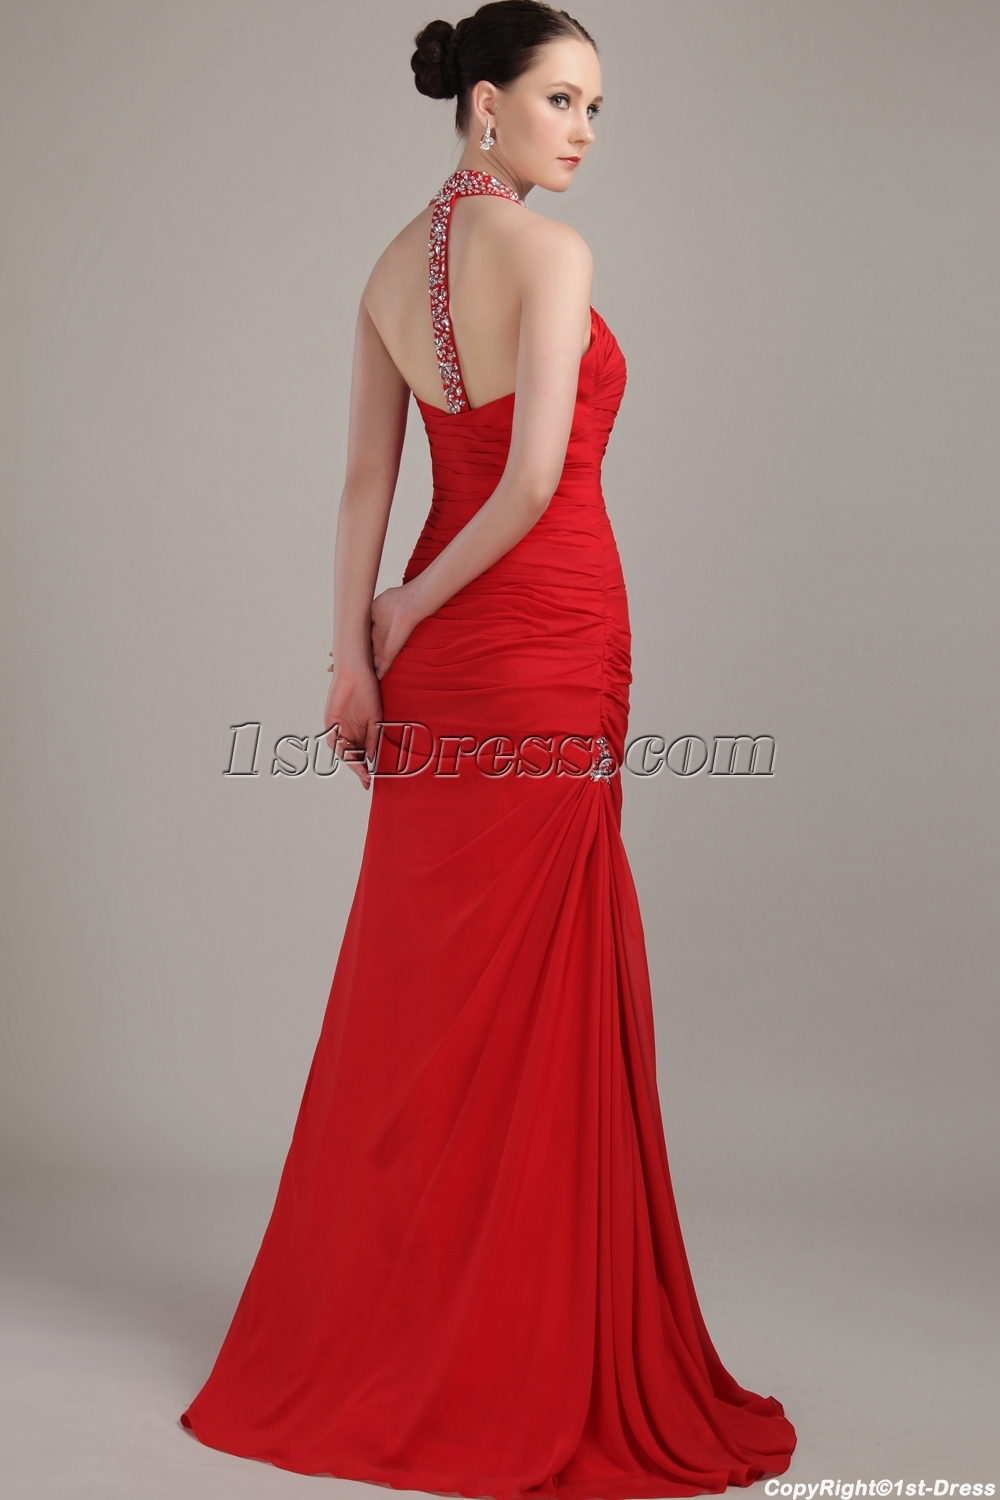 images/201304/big/Red-Sexy-Beach-Prom-Dress-with-T-Back-IMG_3240-1059-b-1-1366190638.jpg